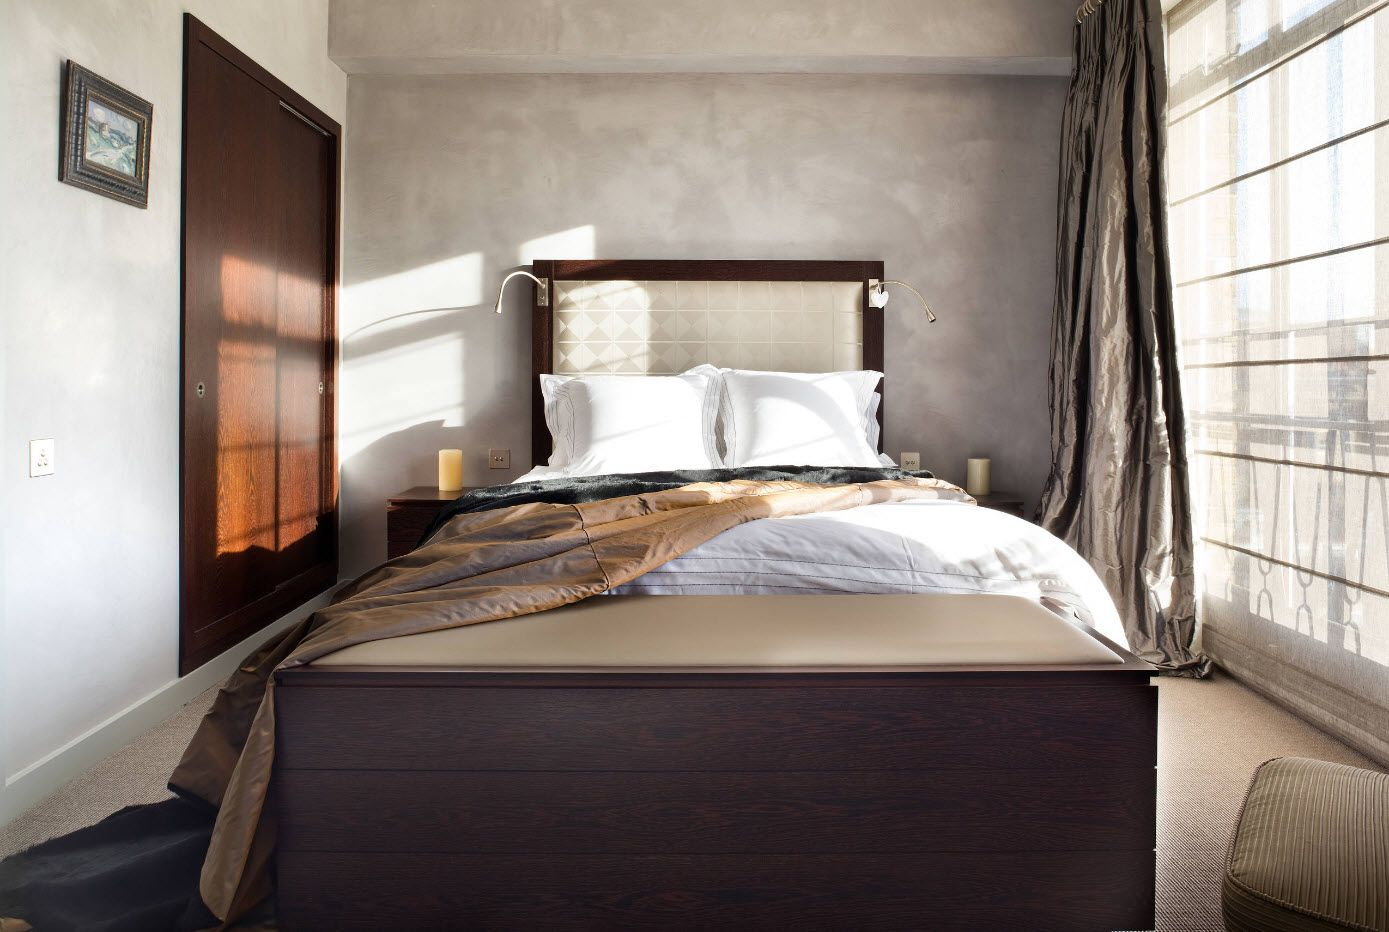 Black footboard and textured accentual at the headboard